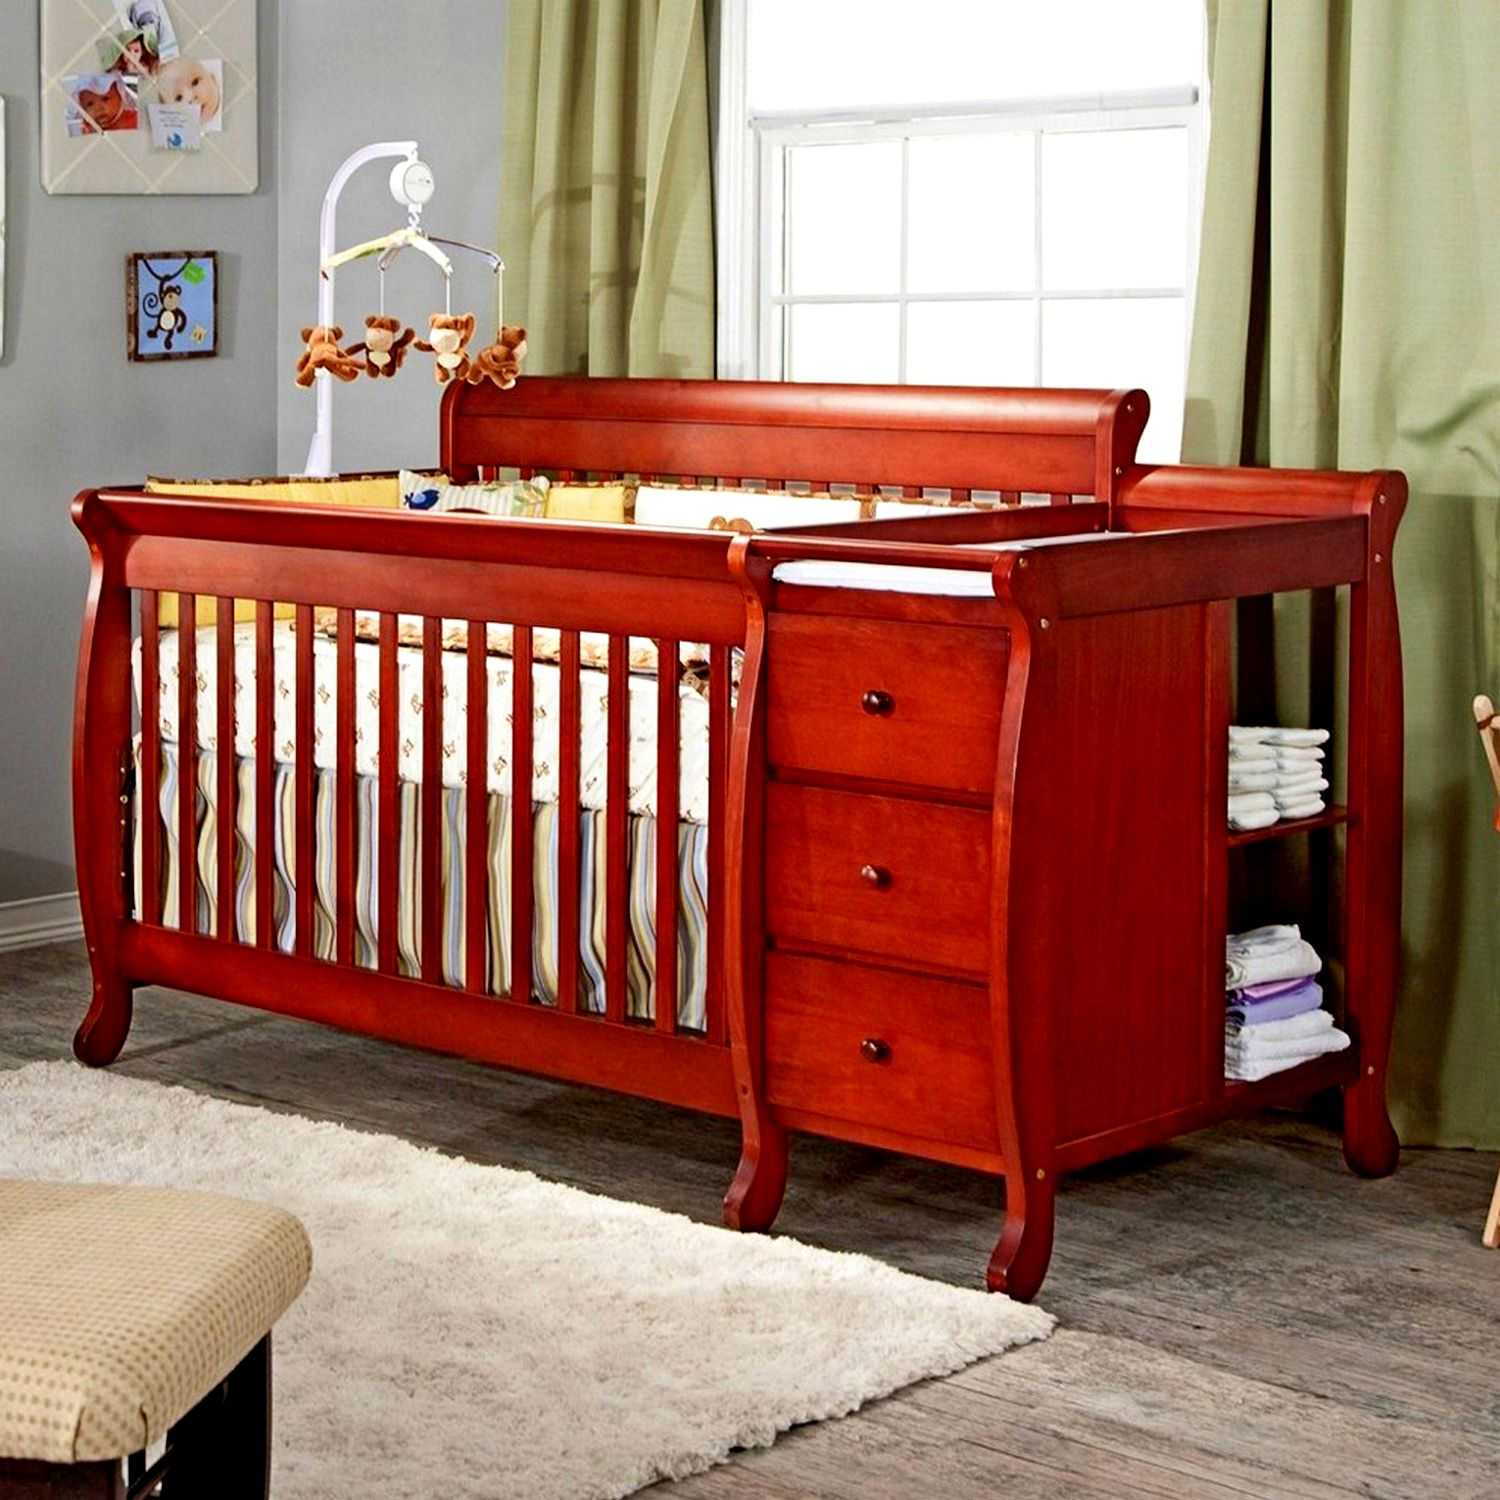 Convertible Sorelle Cribs In Exact Design Changing Table Dresser